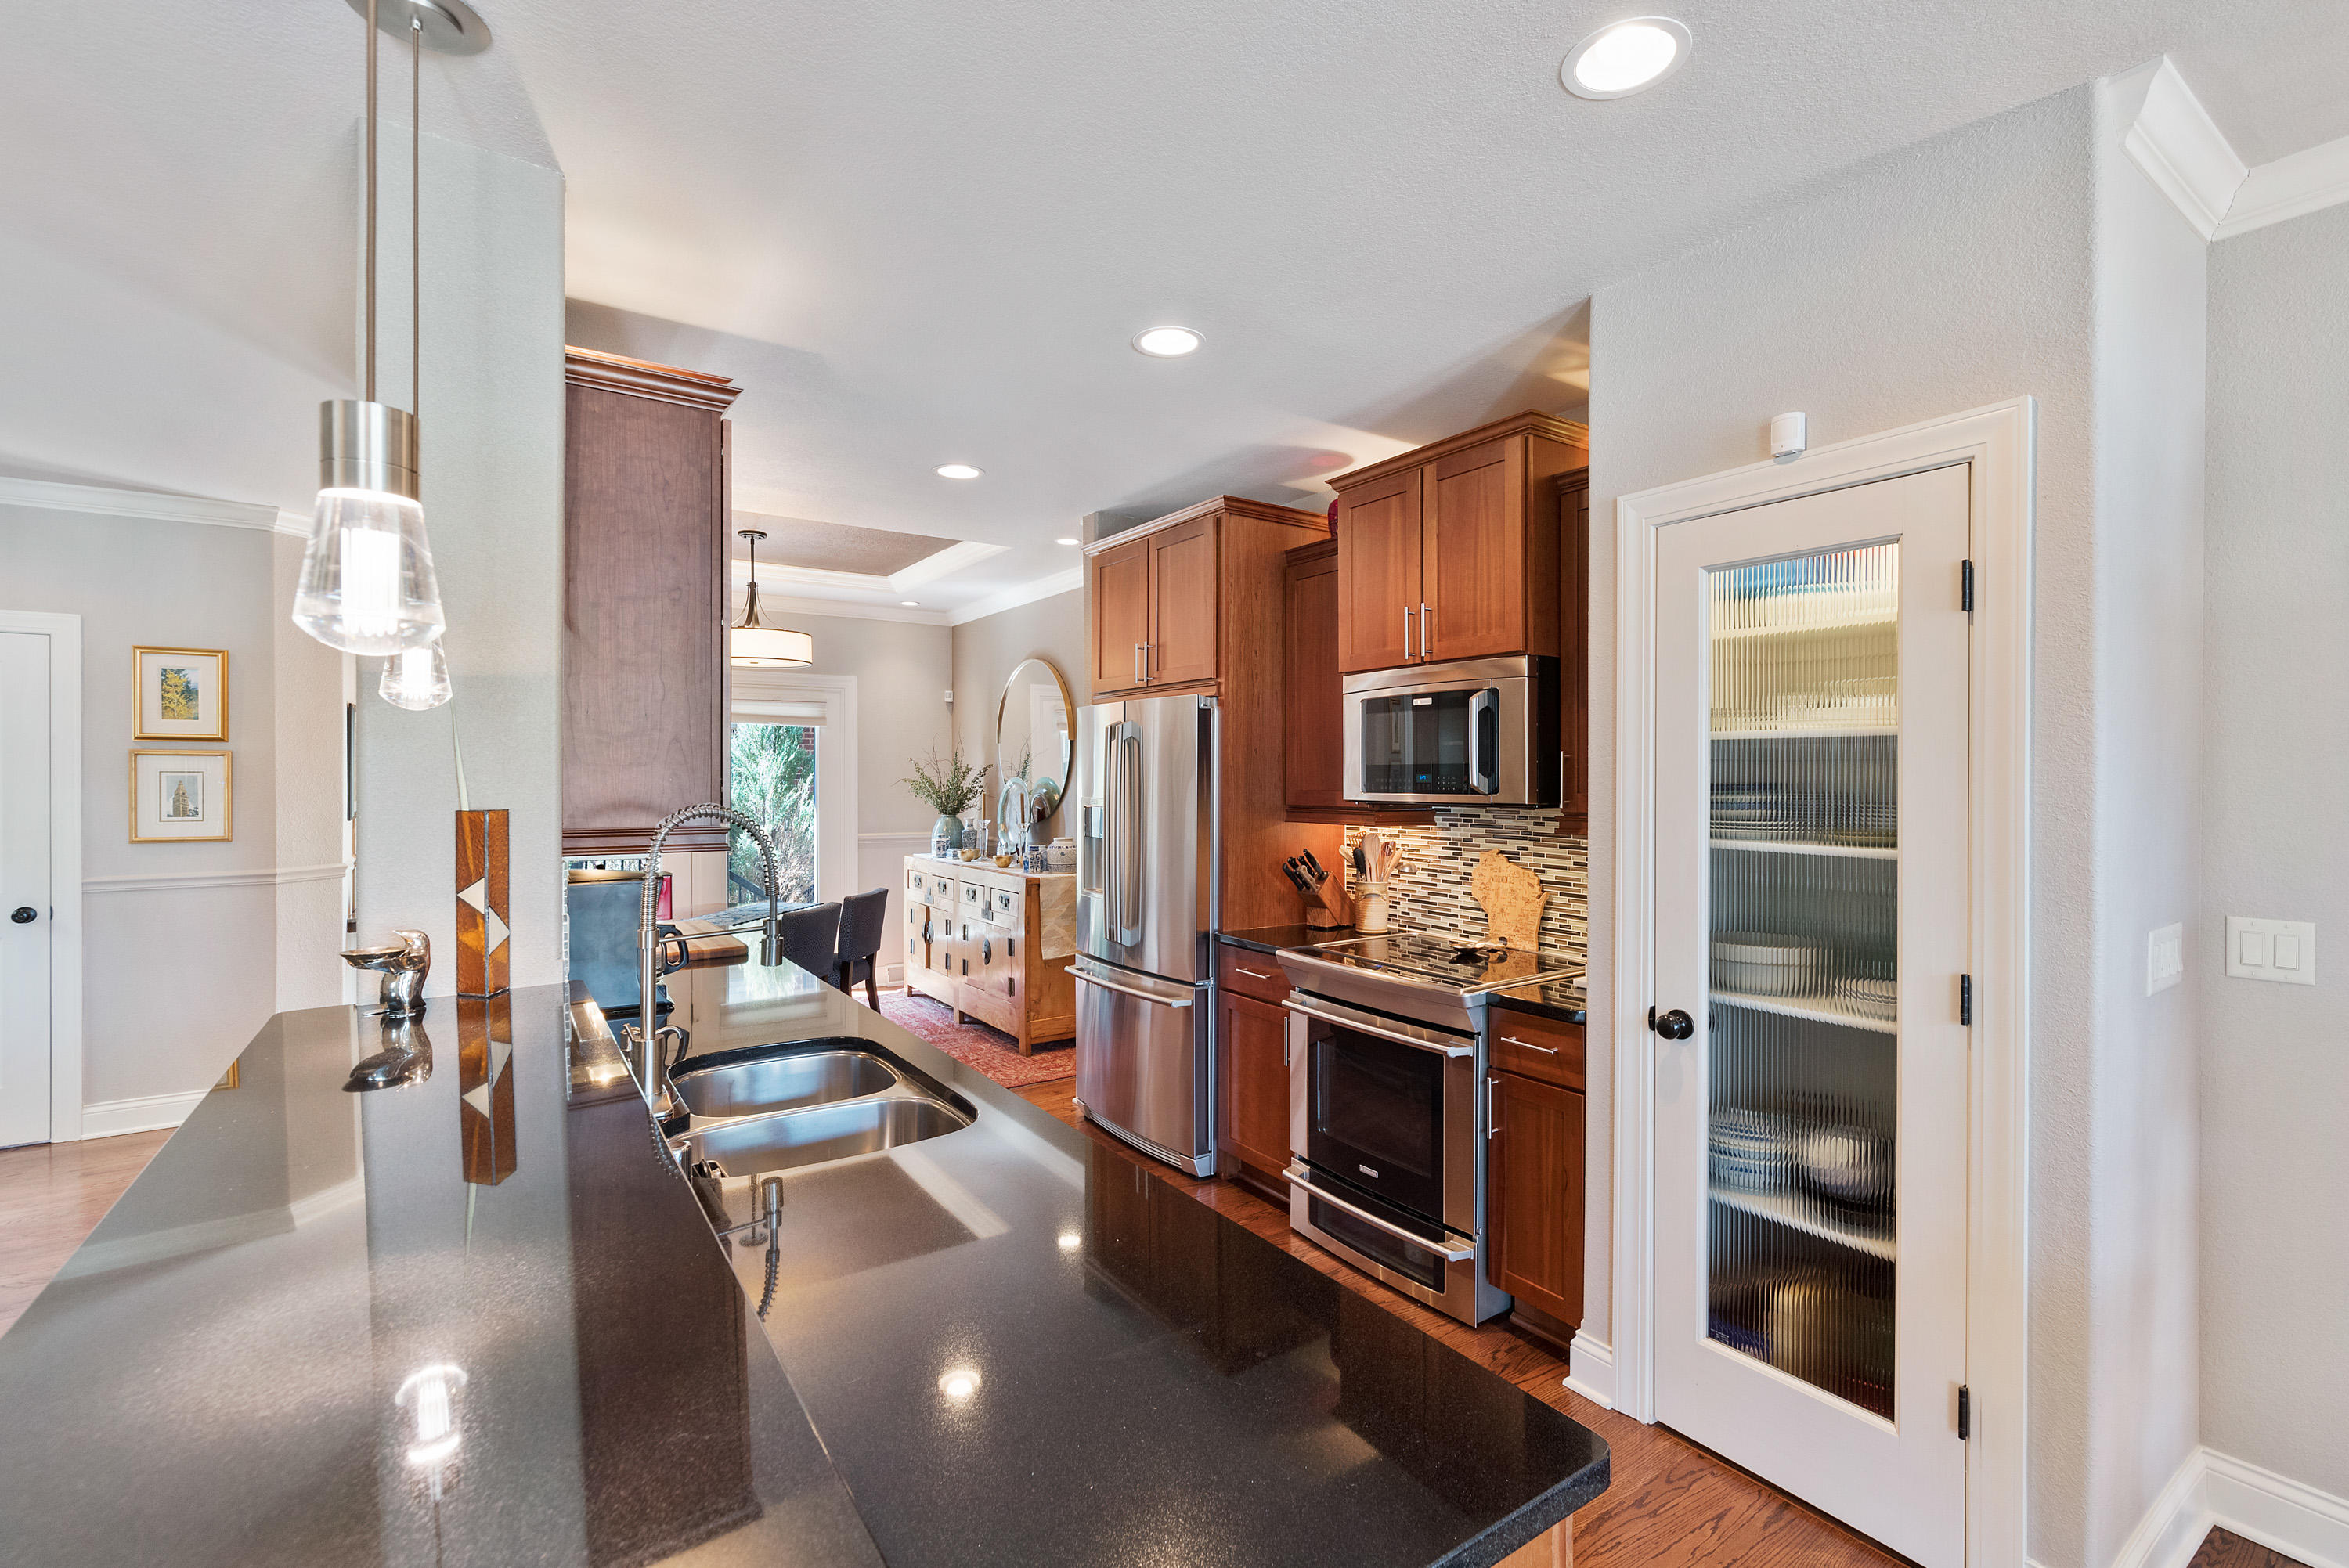 Under Cabinet Lighting and Pantry